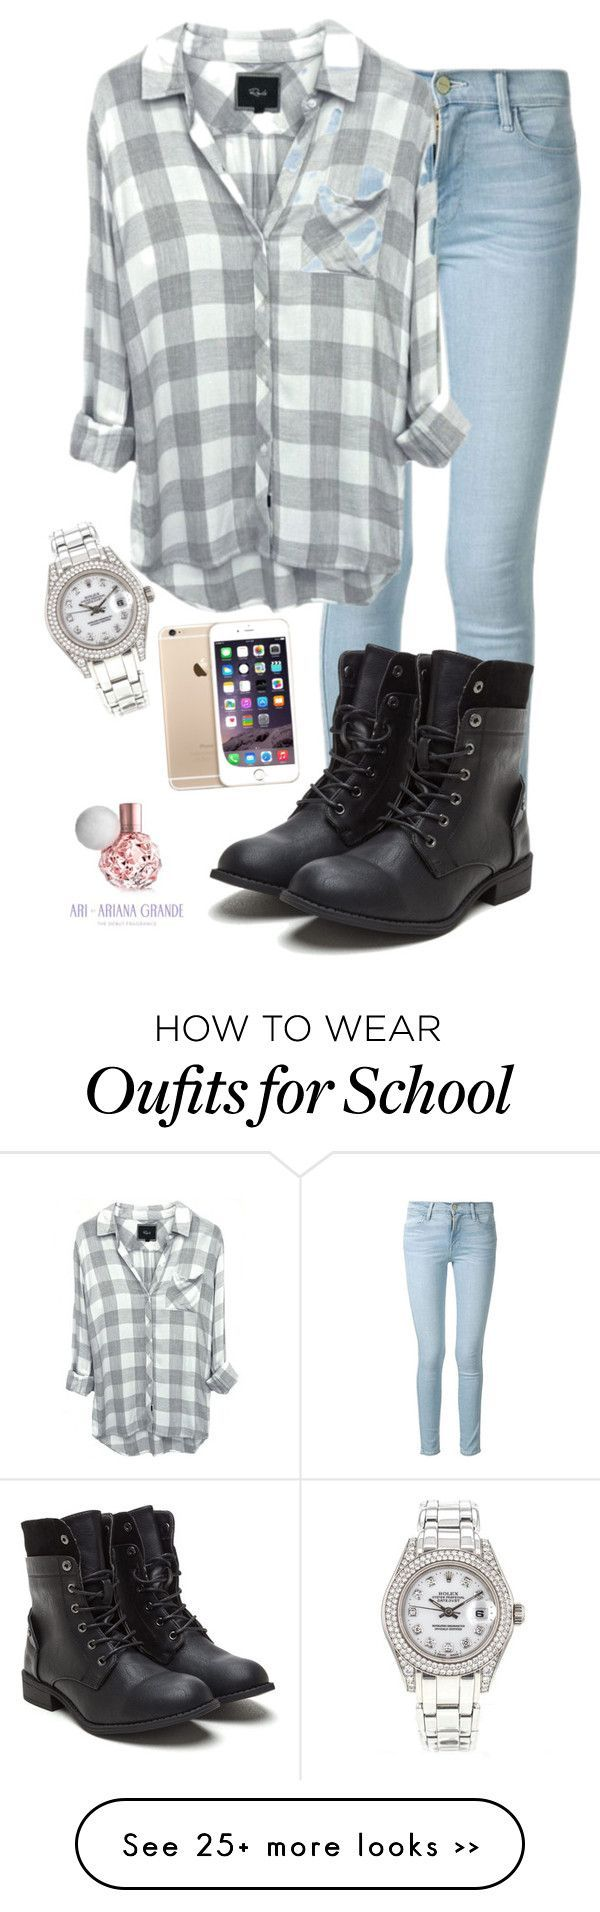 """Back to school"" by yazyandlena on Polyvore featuring Frame Denim and Rolex"